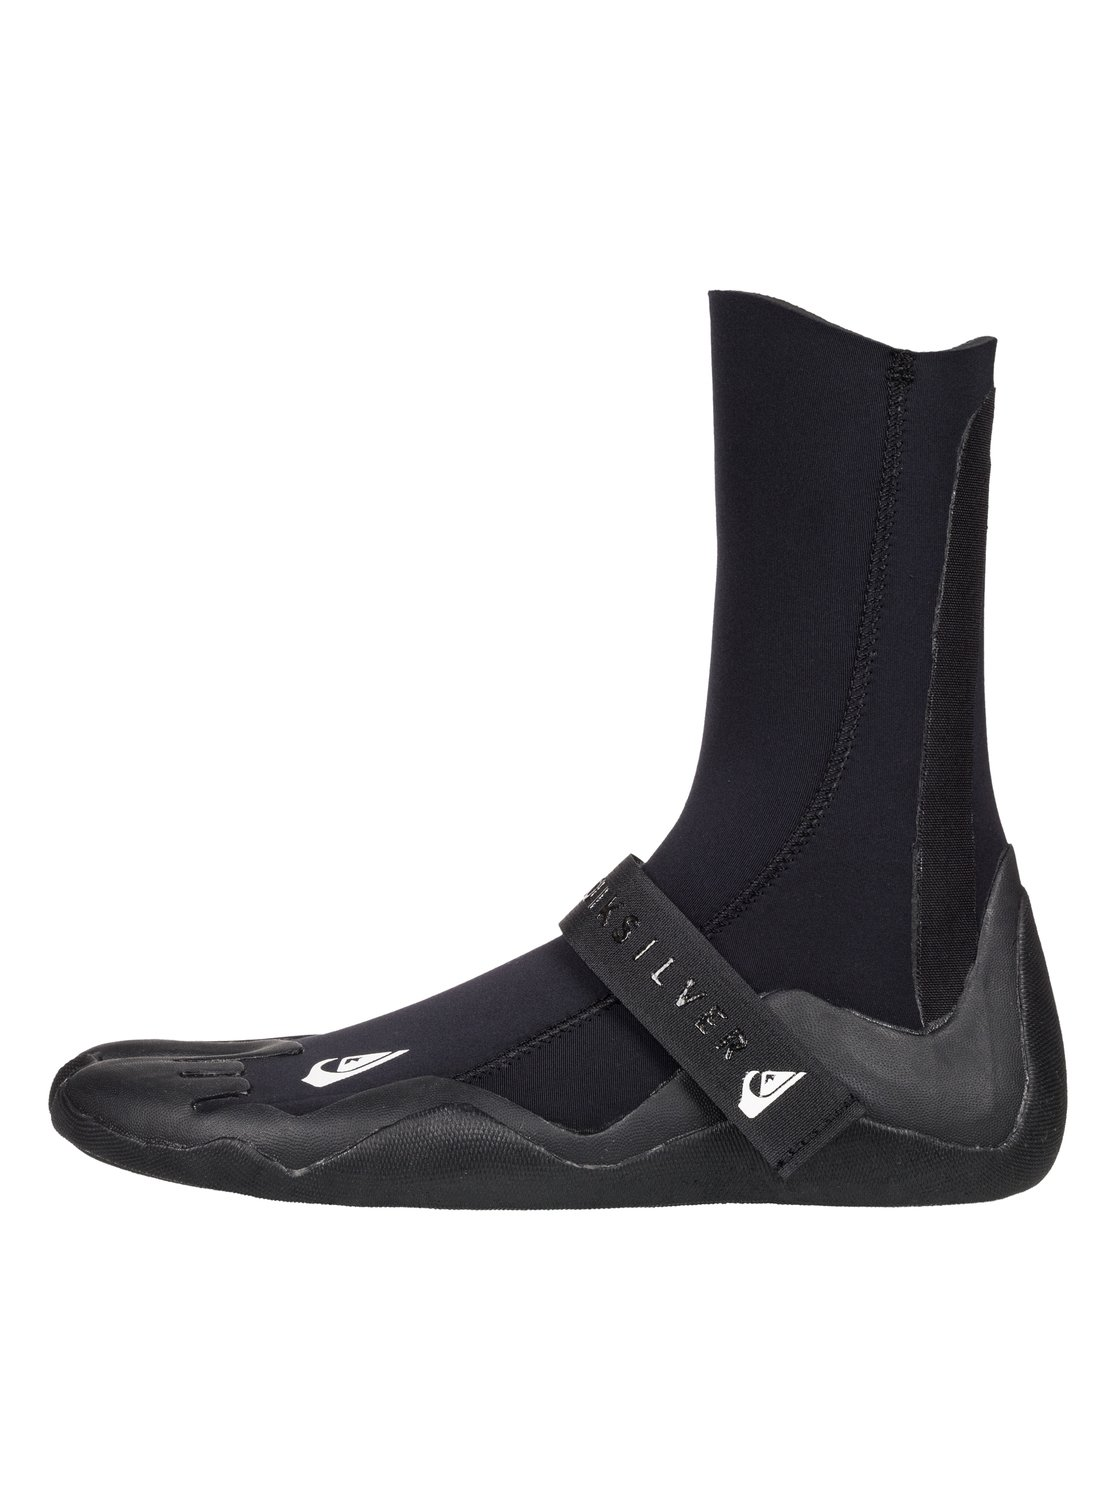 Syncro 3mm - Split Toe Surf Boots